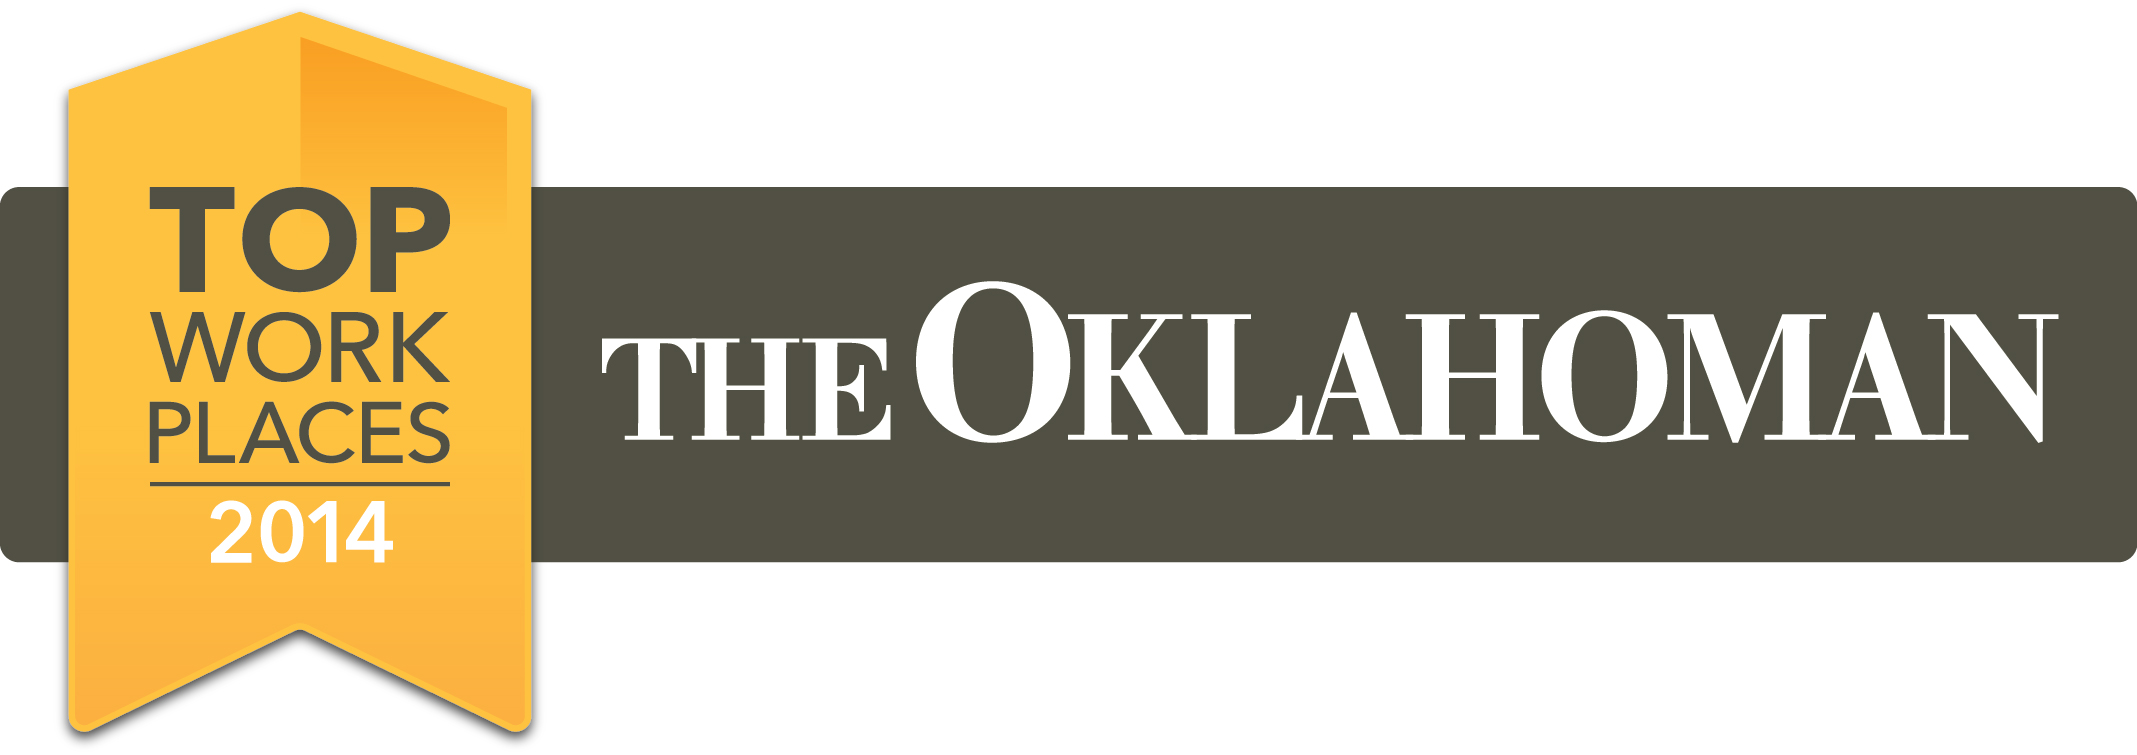 The Oklahoman Top Workplaces 2014 logo